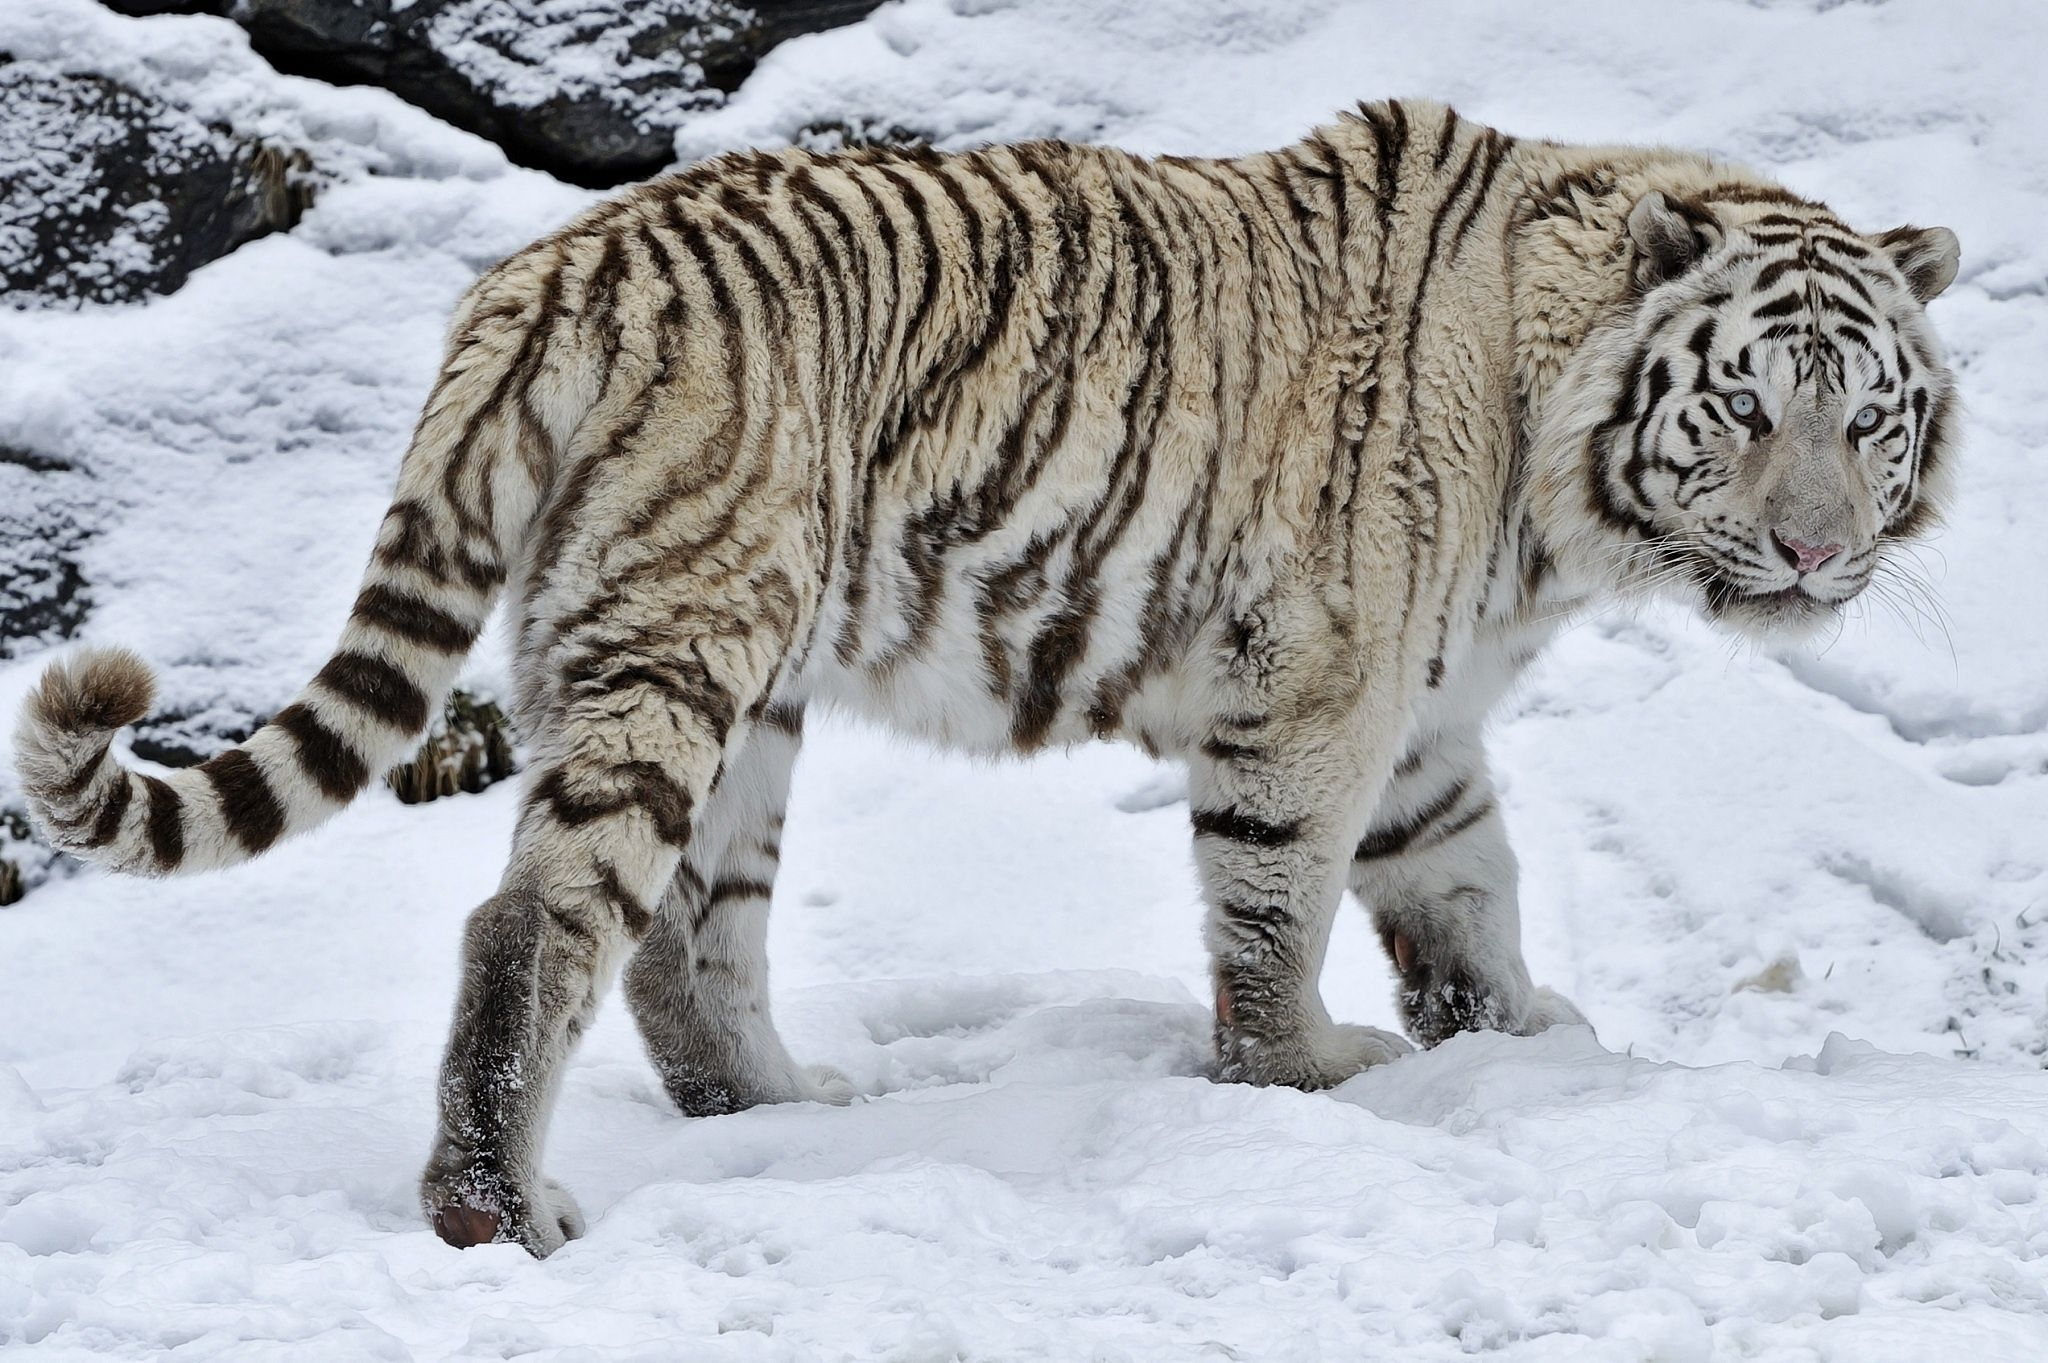 White tiger tiger wild cat snow winter wallpaper | 2048x1363 ...